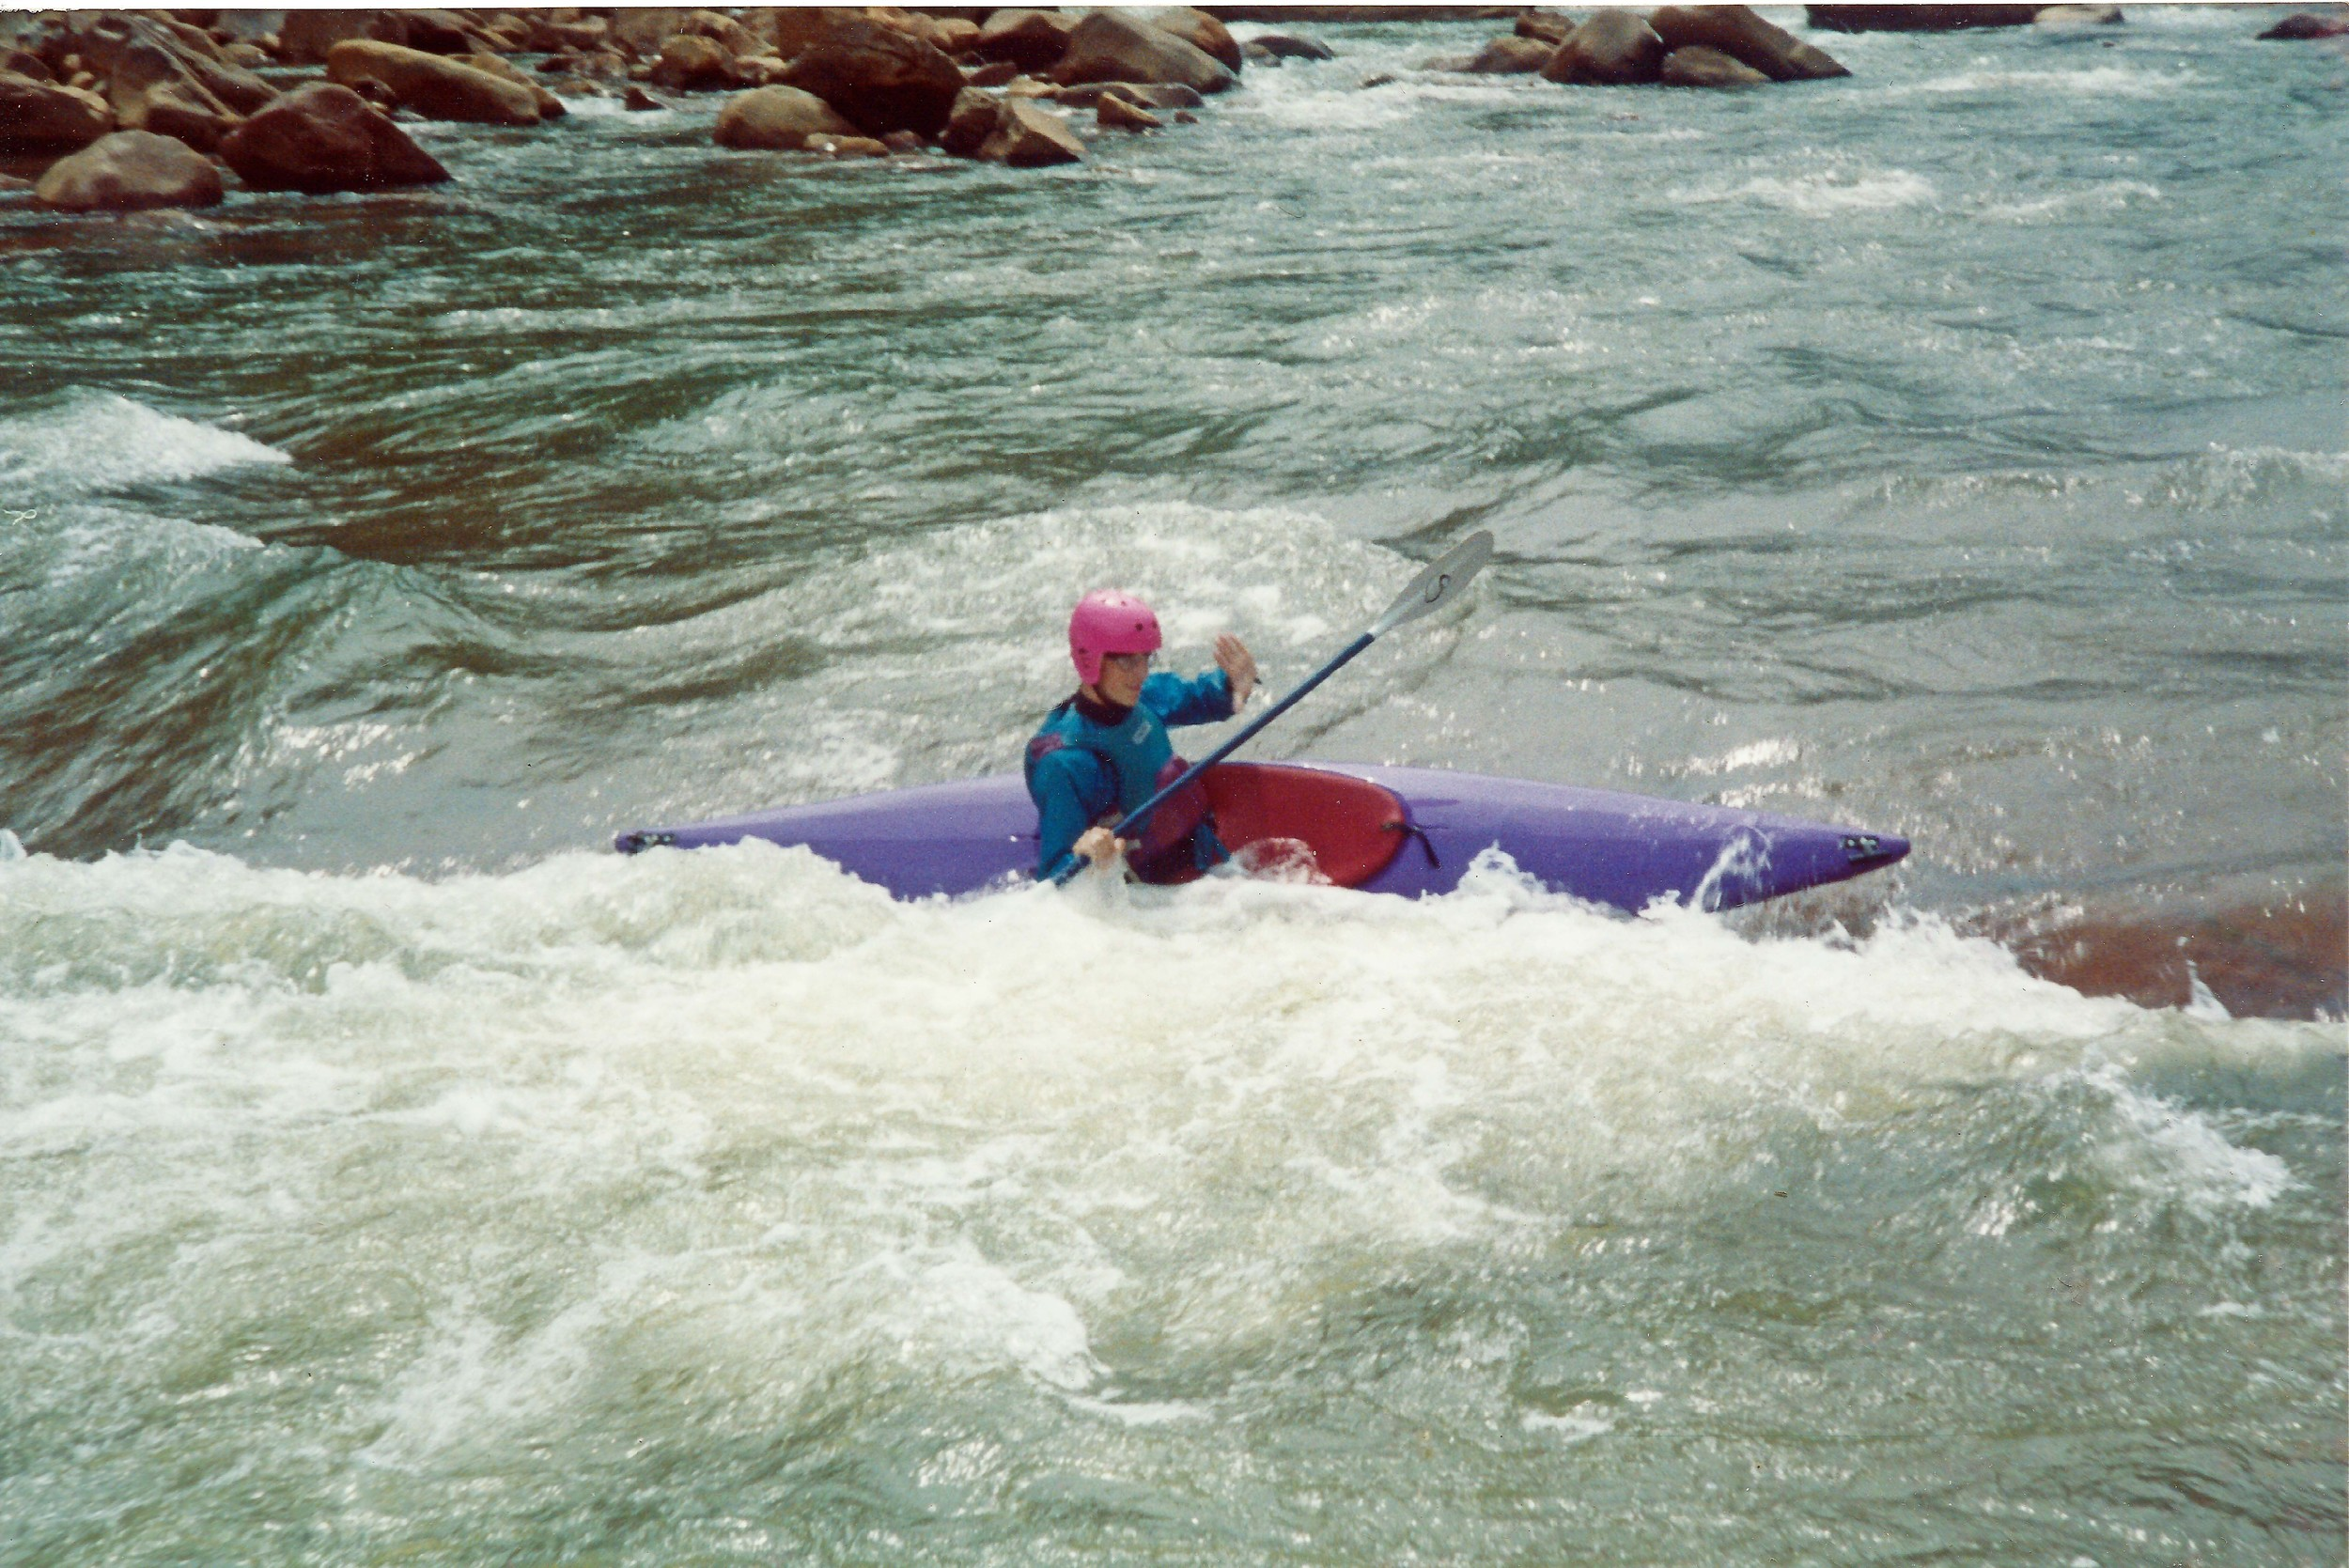 Kevin, on the river in his teenage years.